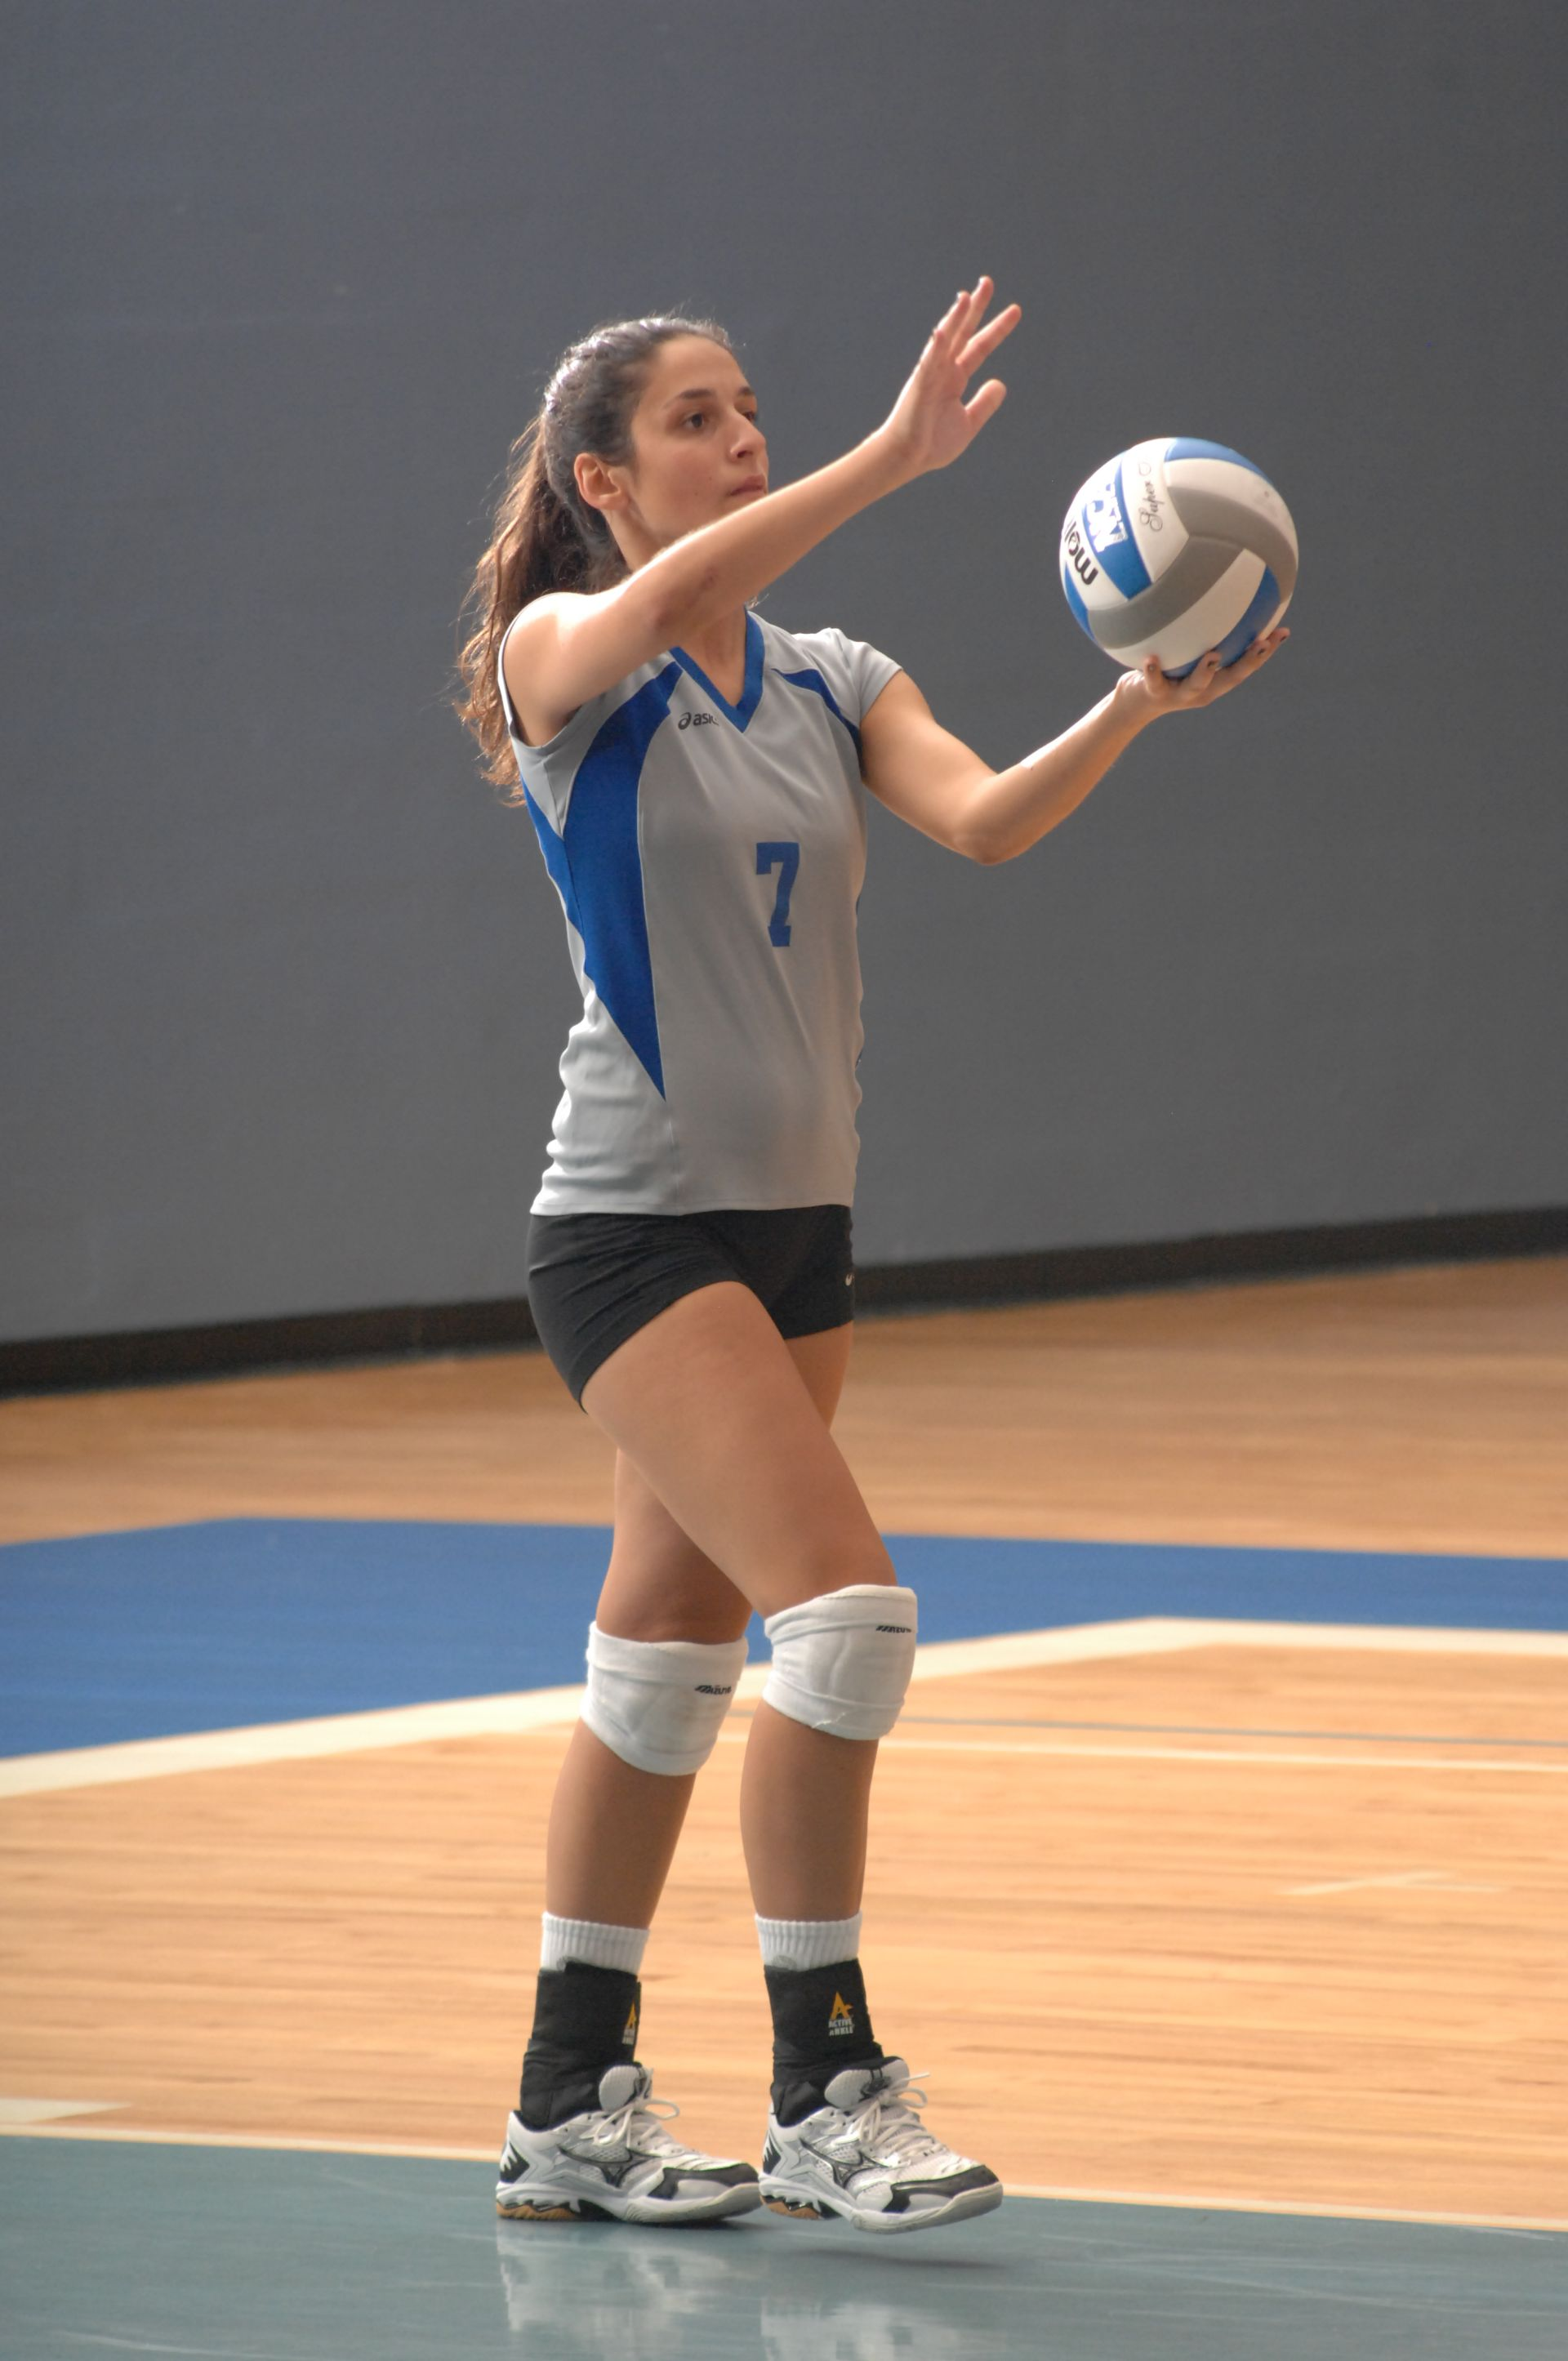 Emily Varni '09 - Colby Volleyball